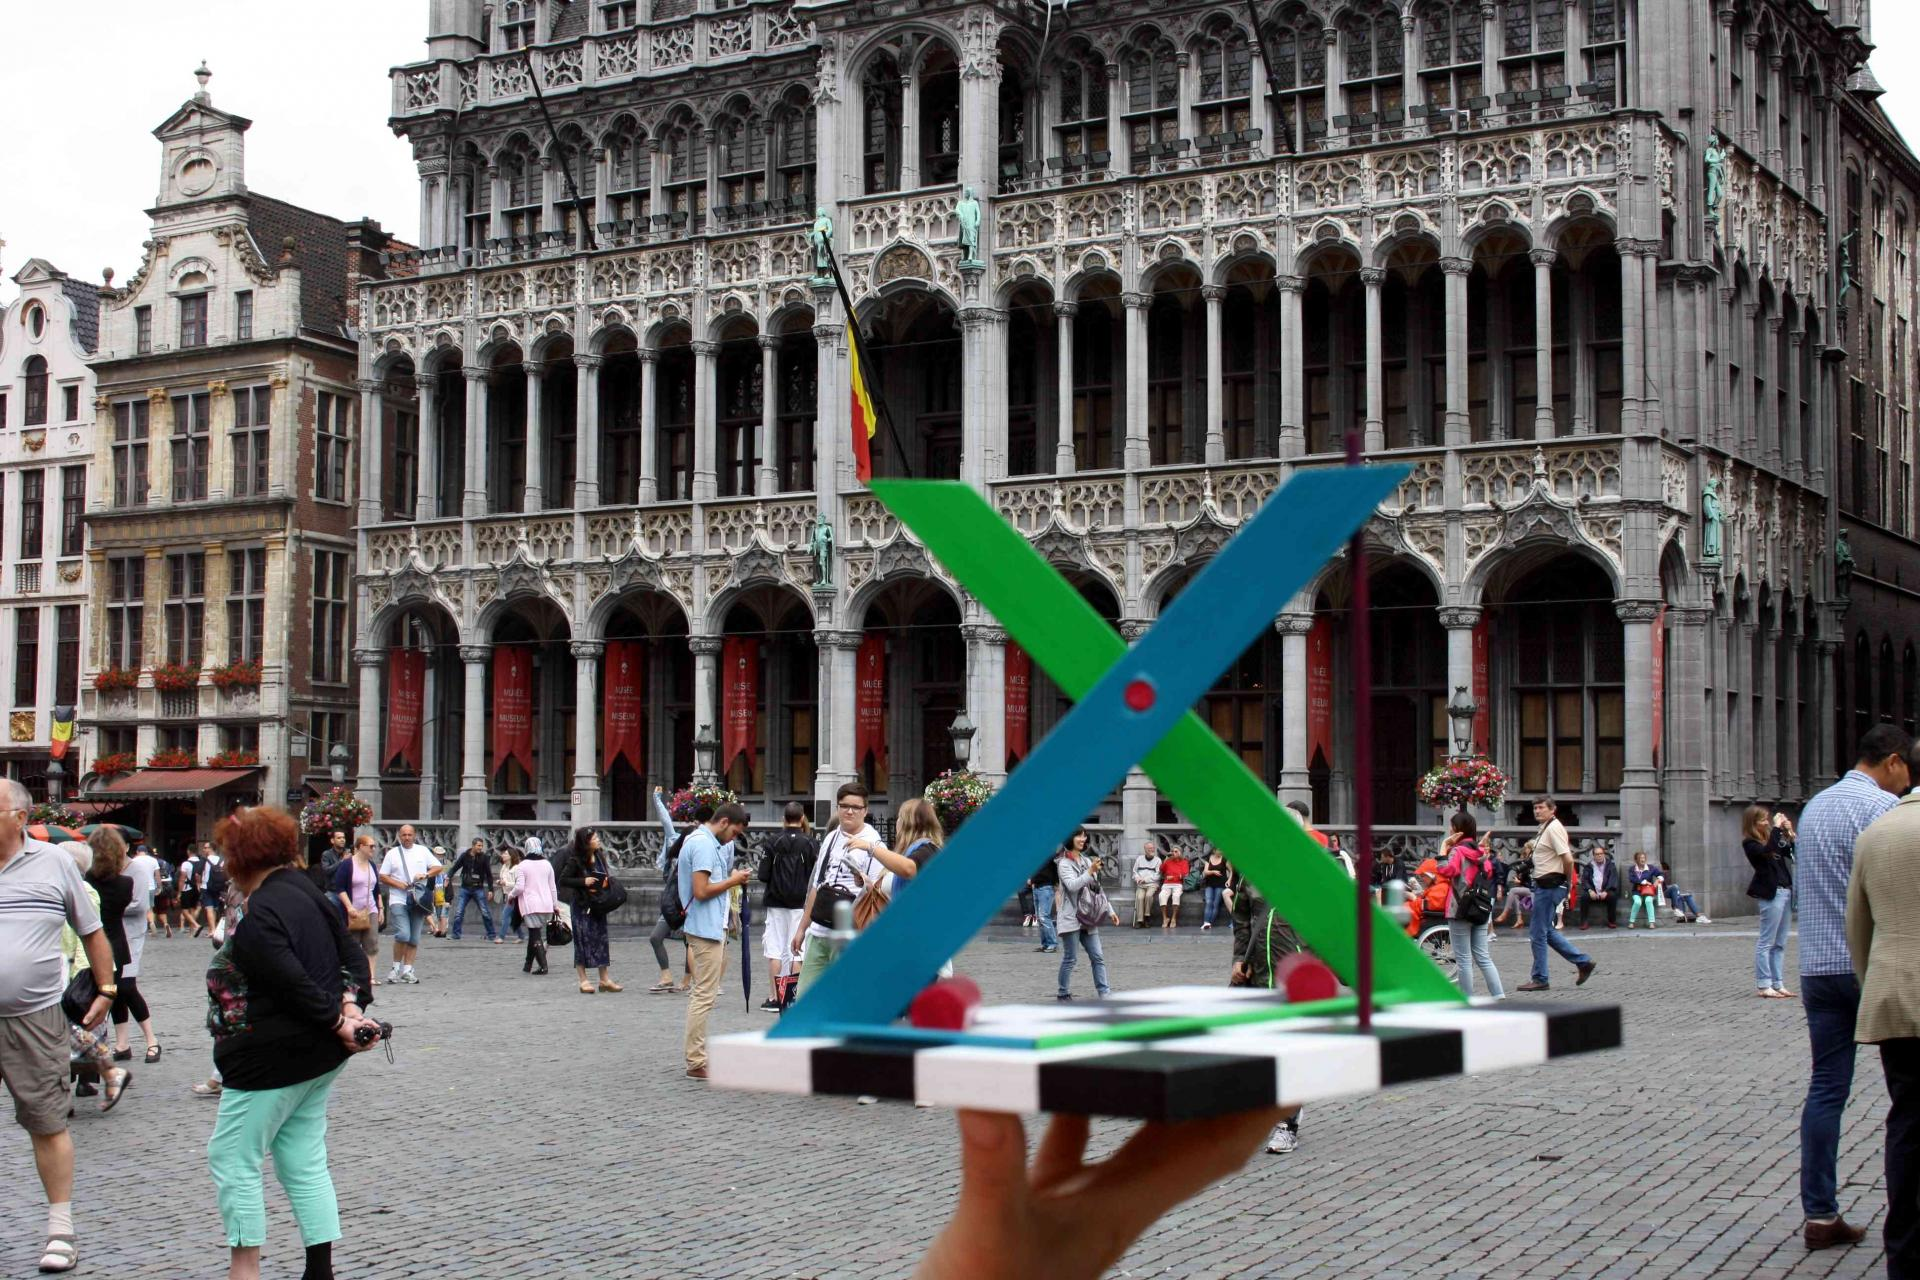 X by Johannes BlonK in Brussels, Belgium